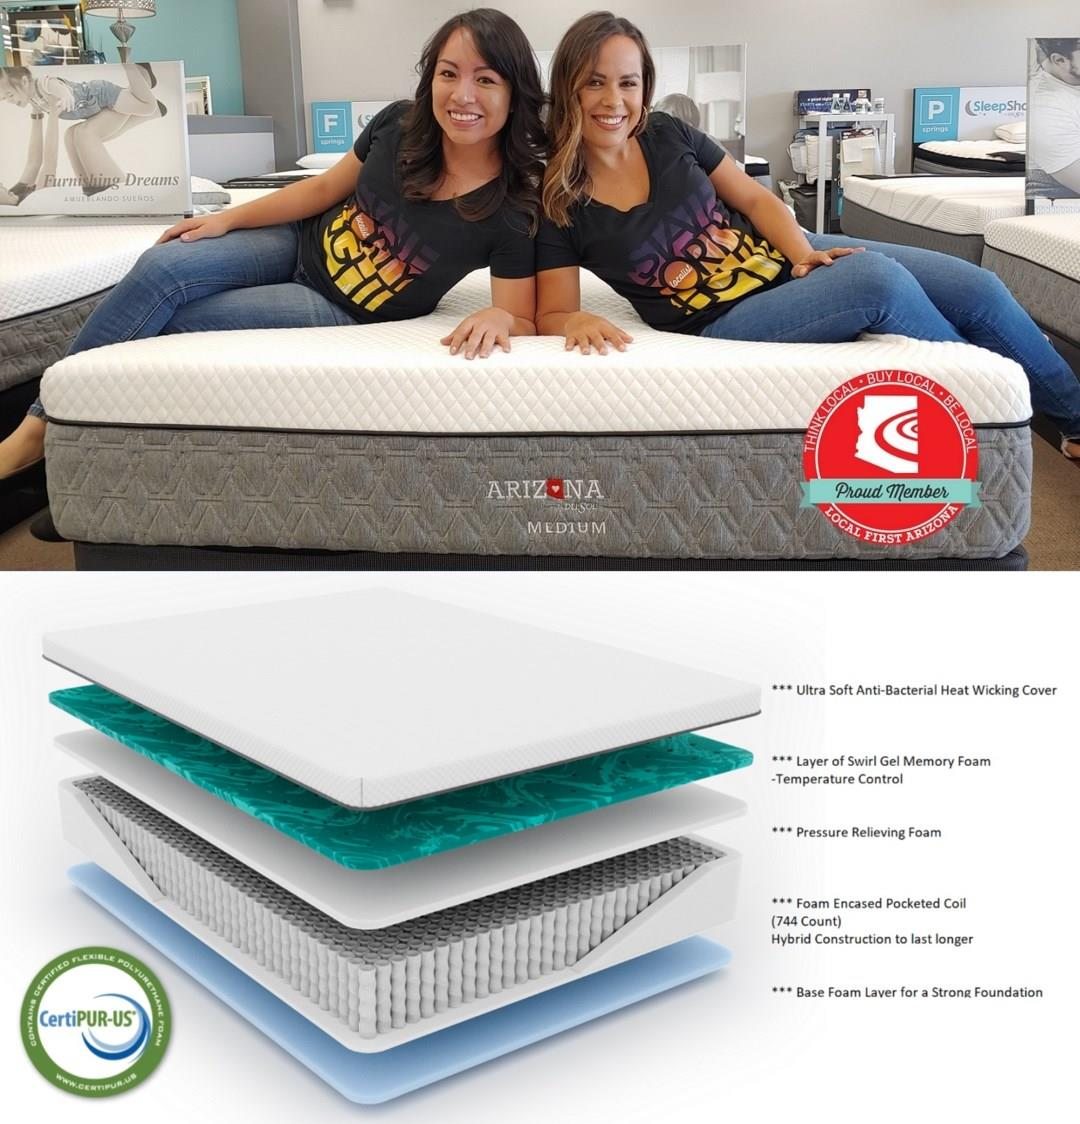 The Mattress That Supports You And Arizona Del Sol Furniture Phoenix Glendale Tempe Scottsdale Avondale Peoria Goodyear Litchfield Arizona